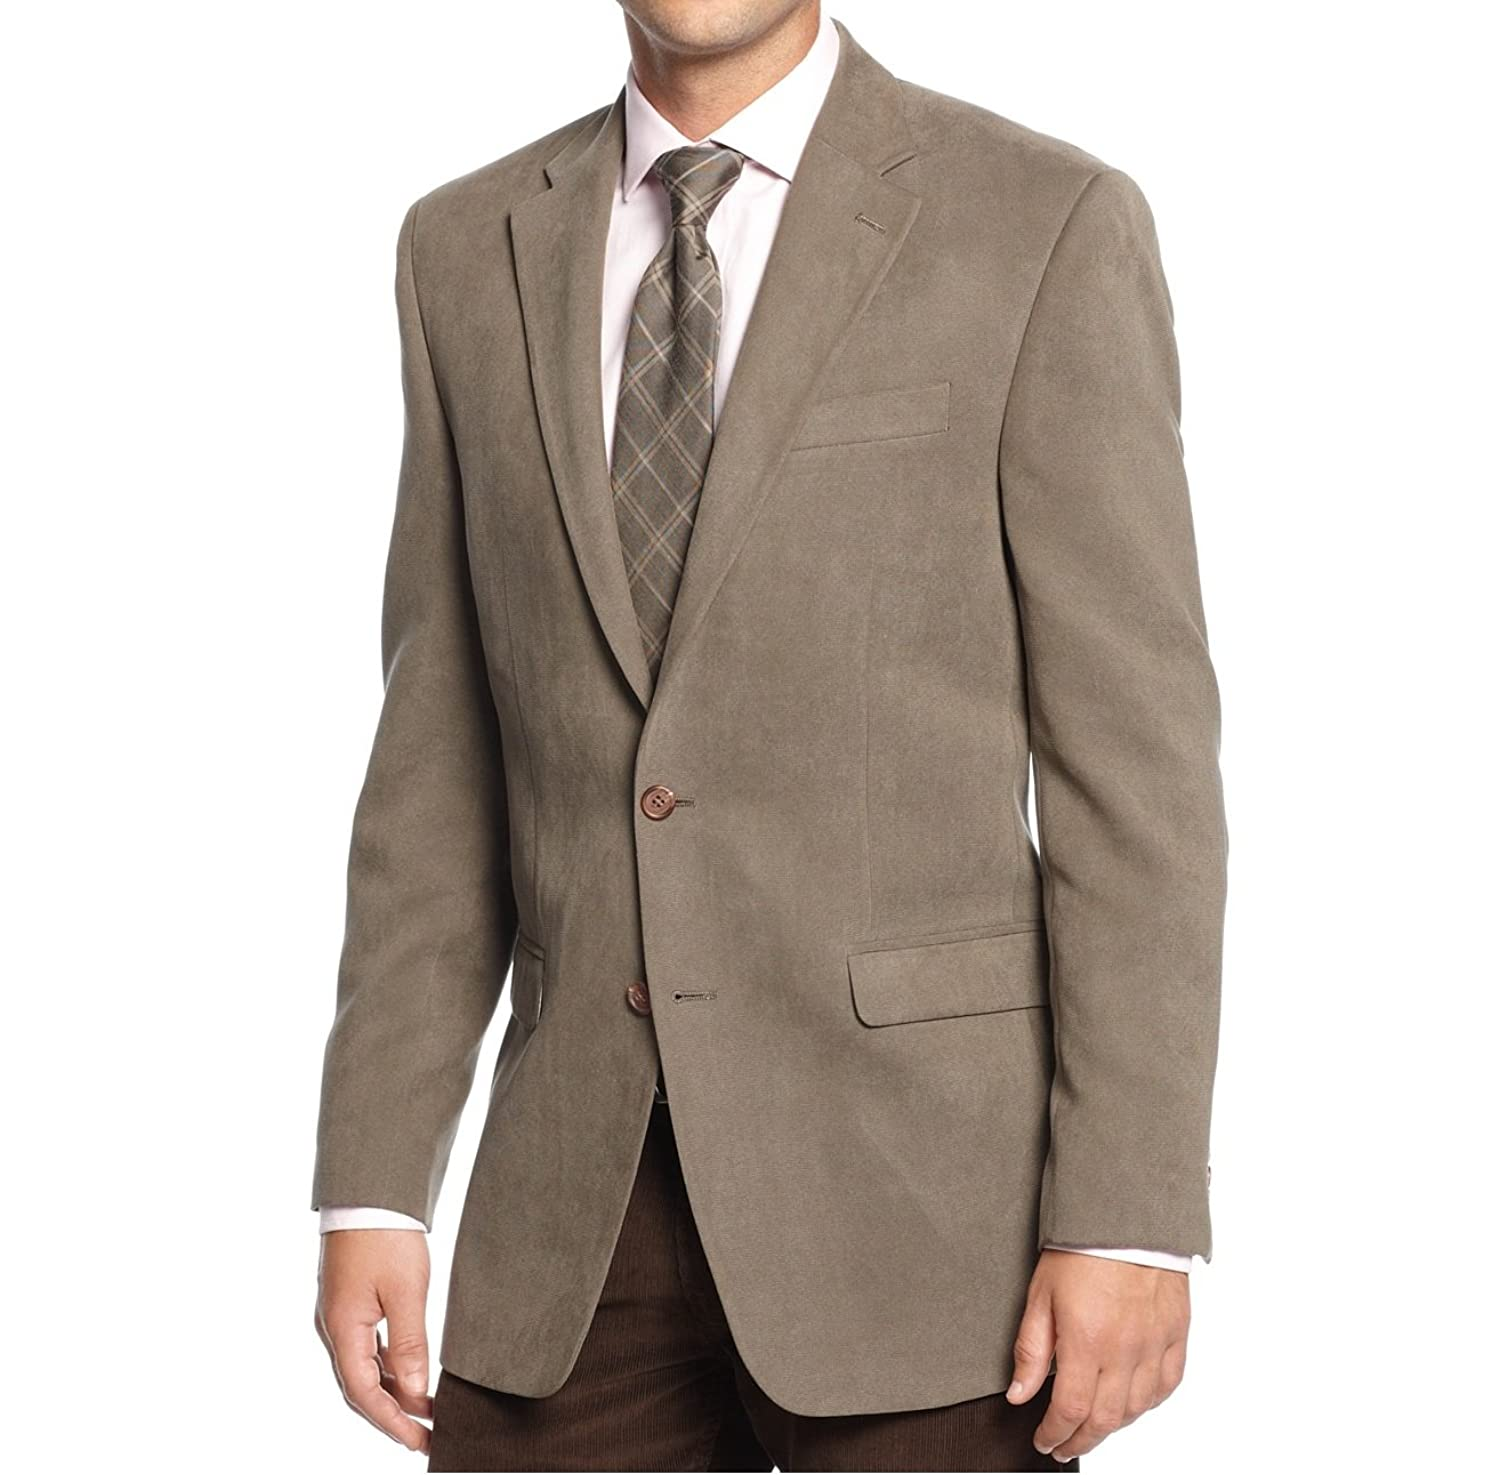 $295 Ralph Lauren Blazer Grey Twill Two Button New Men's Sport Coat